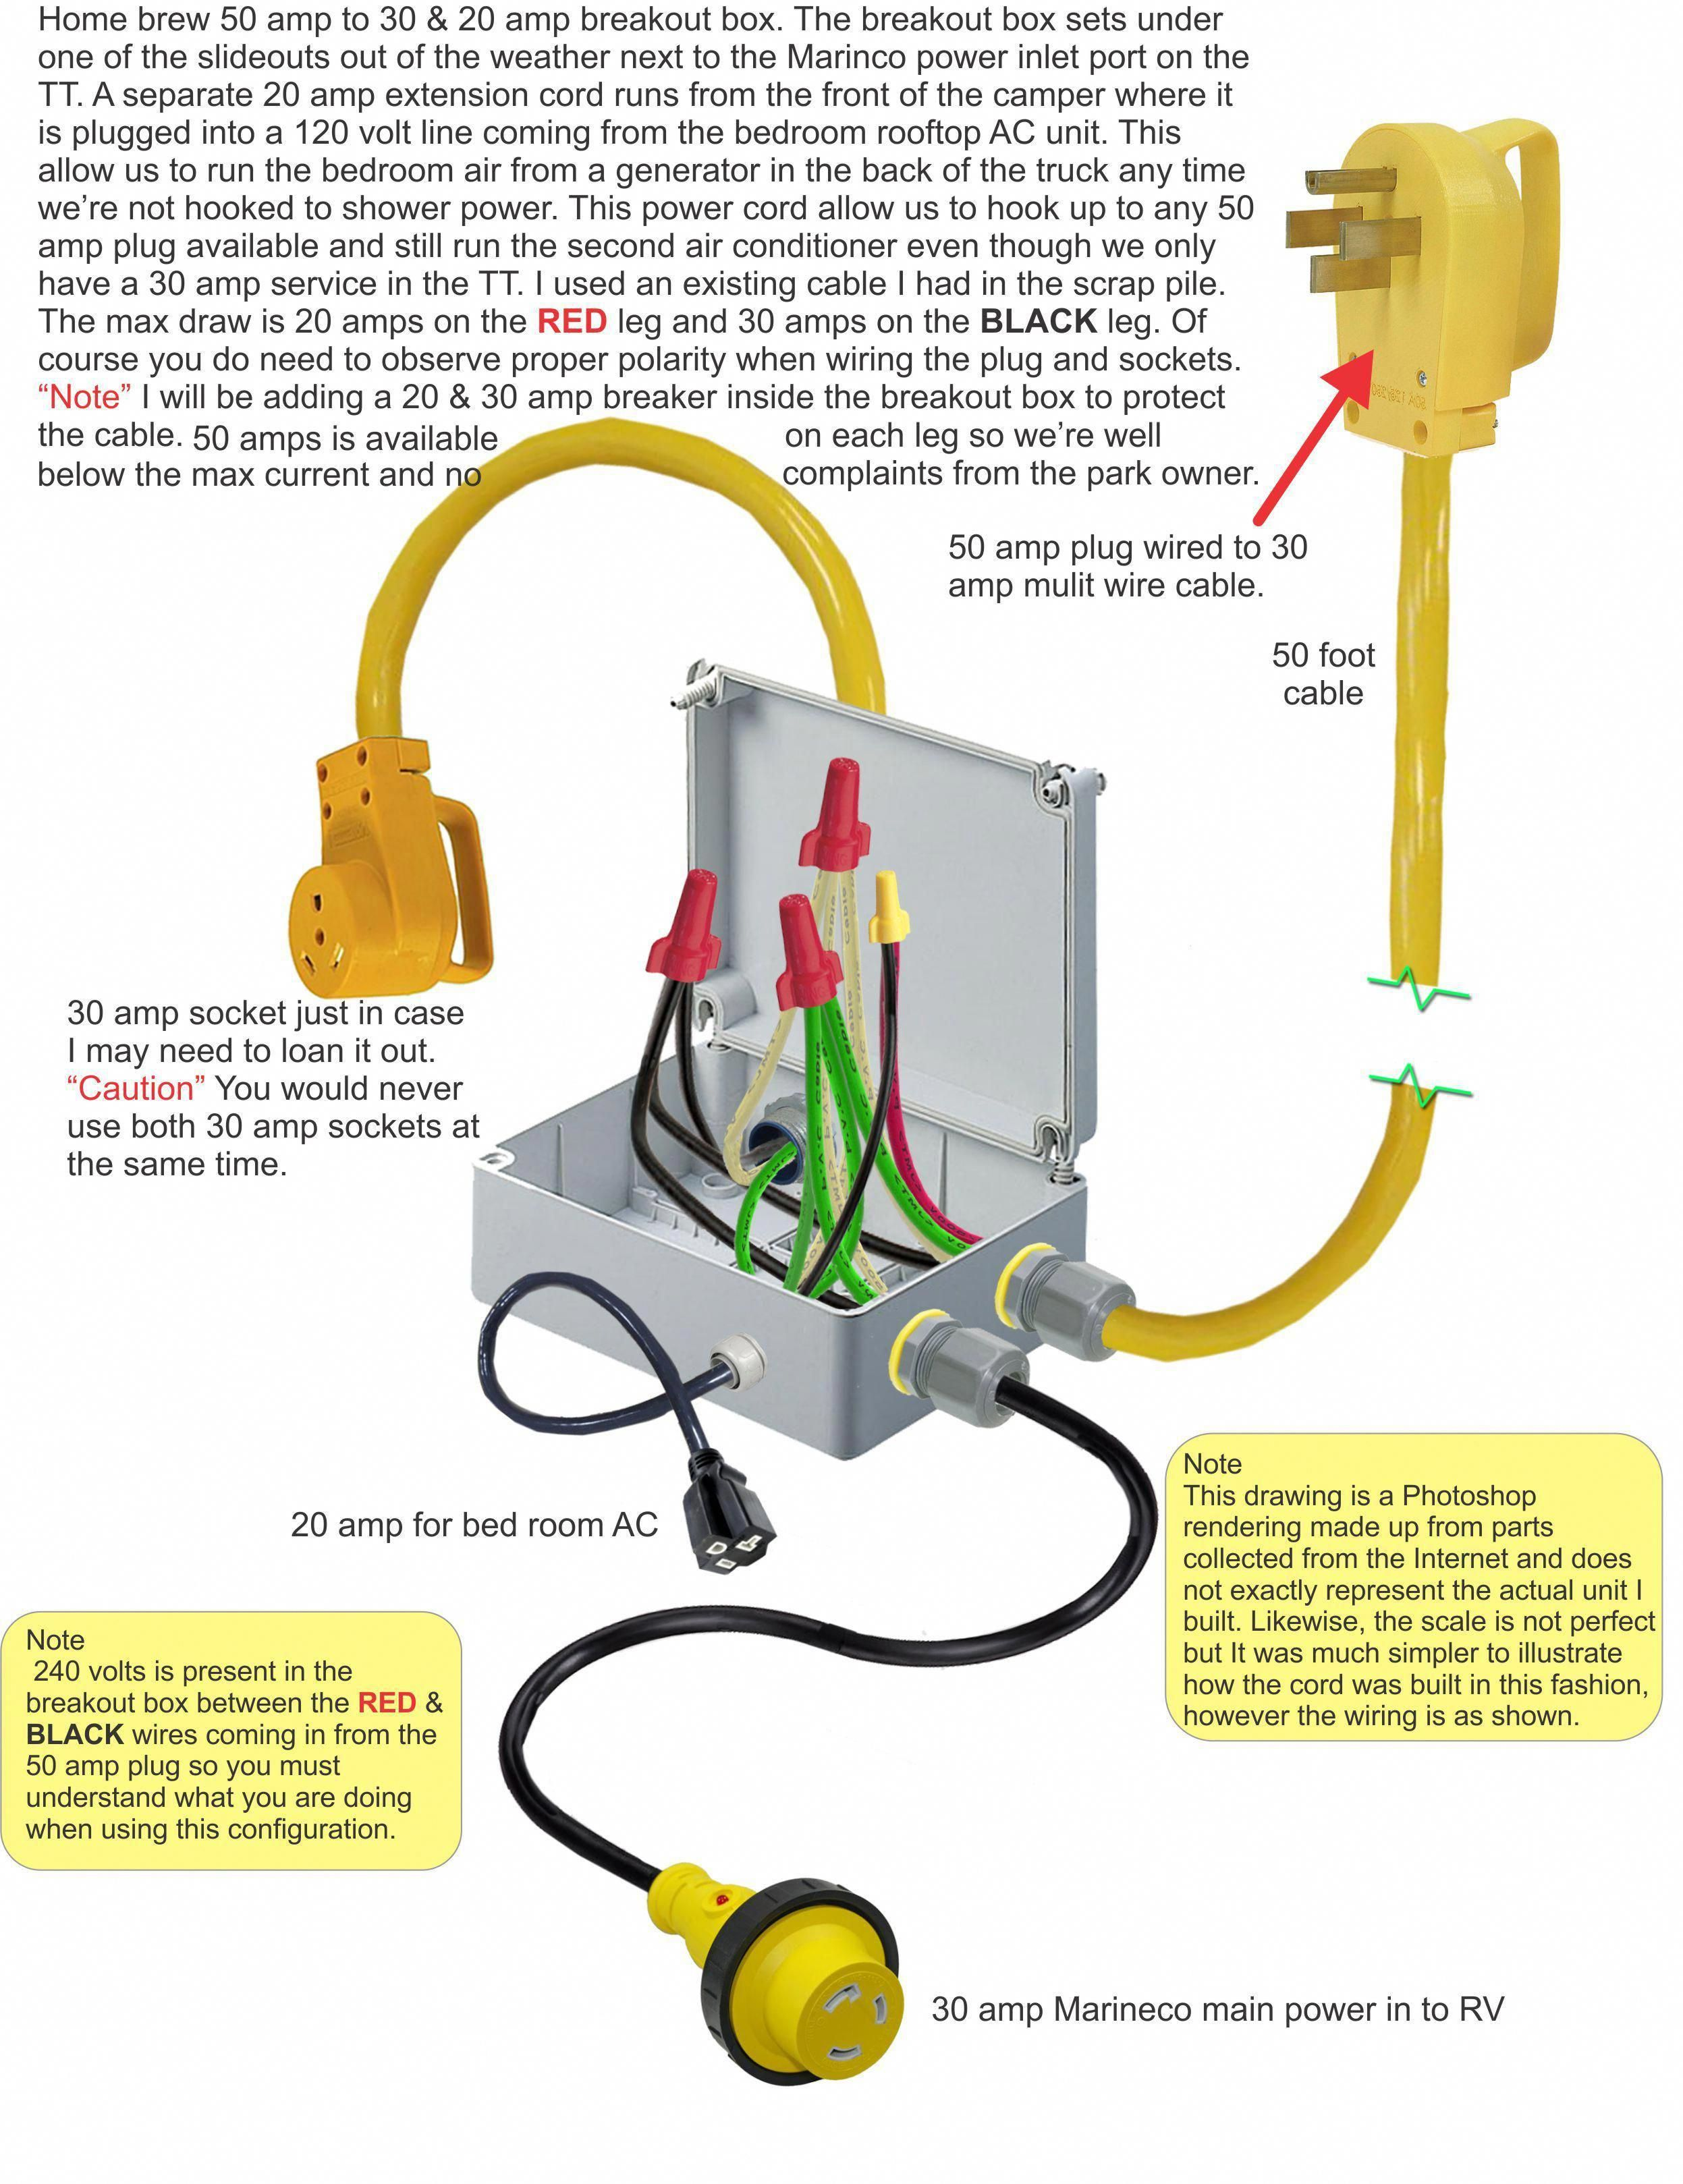 50 Amp RV Plug Wiring Diagram * More details can be found